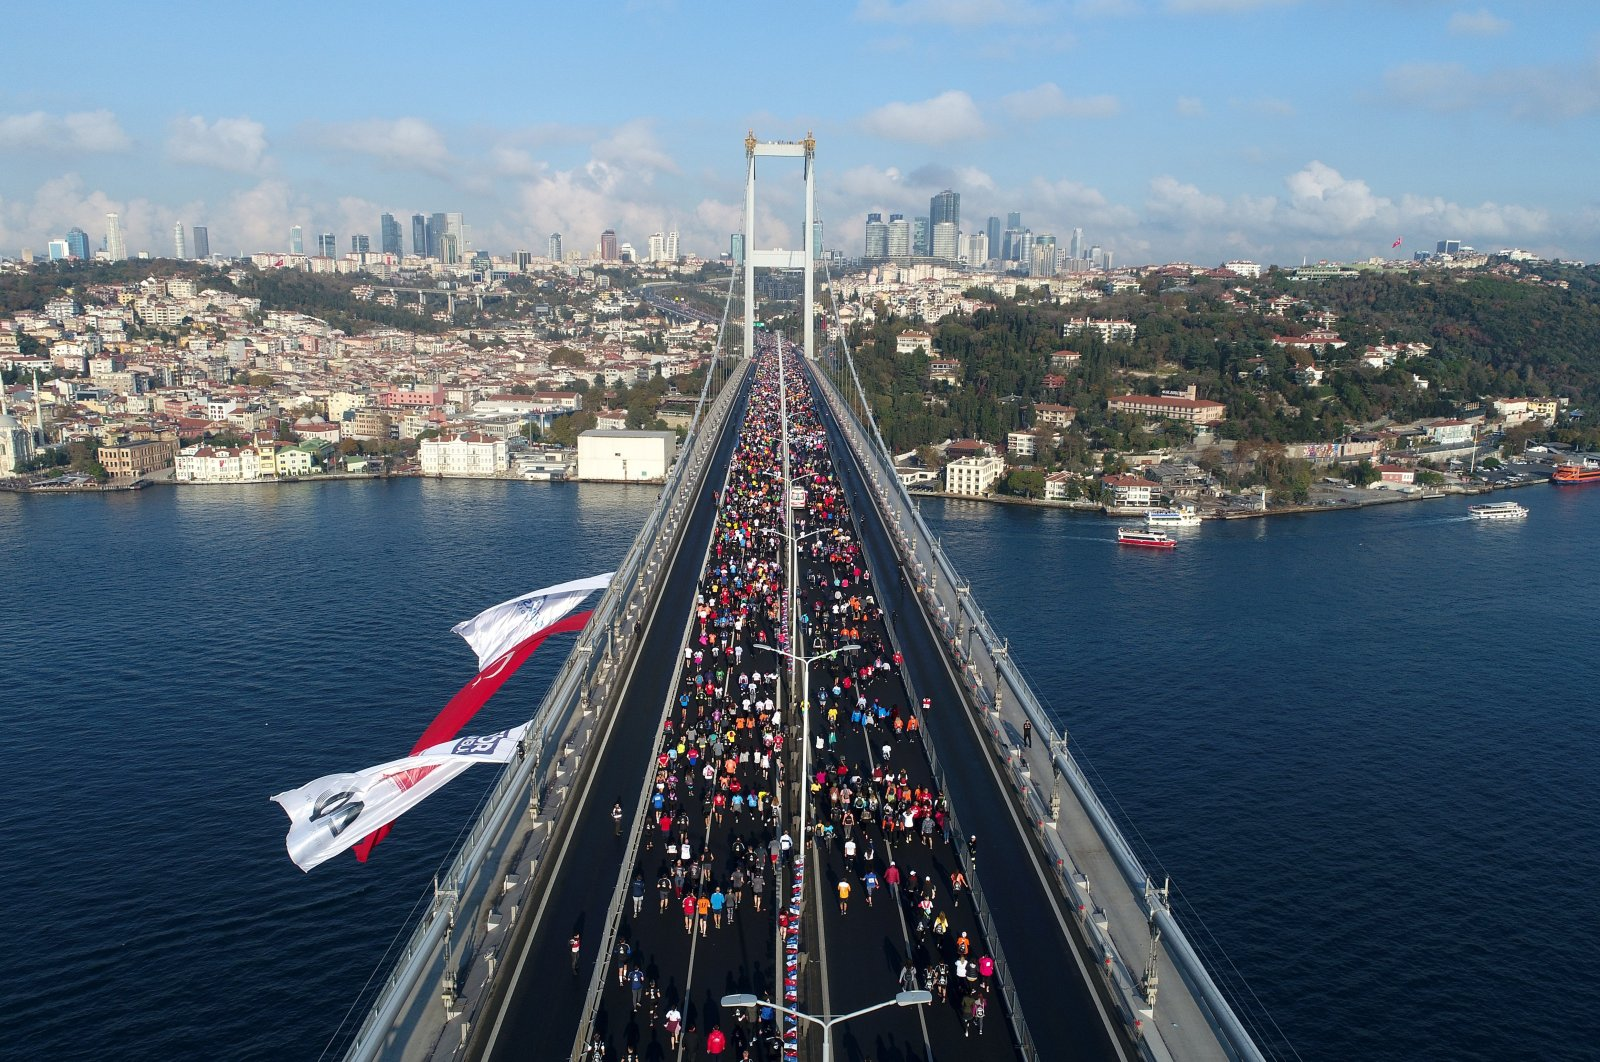 Runners cross the July 15 Martyrs' Bridge, formerly known as the Bosphorus Bridge, every year at the annual Istanbul Marathon. (IHA Photo)